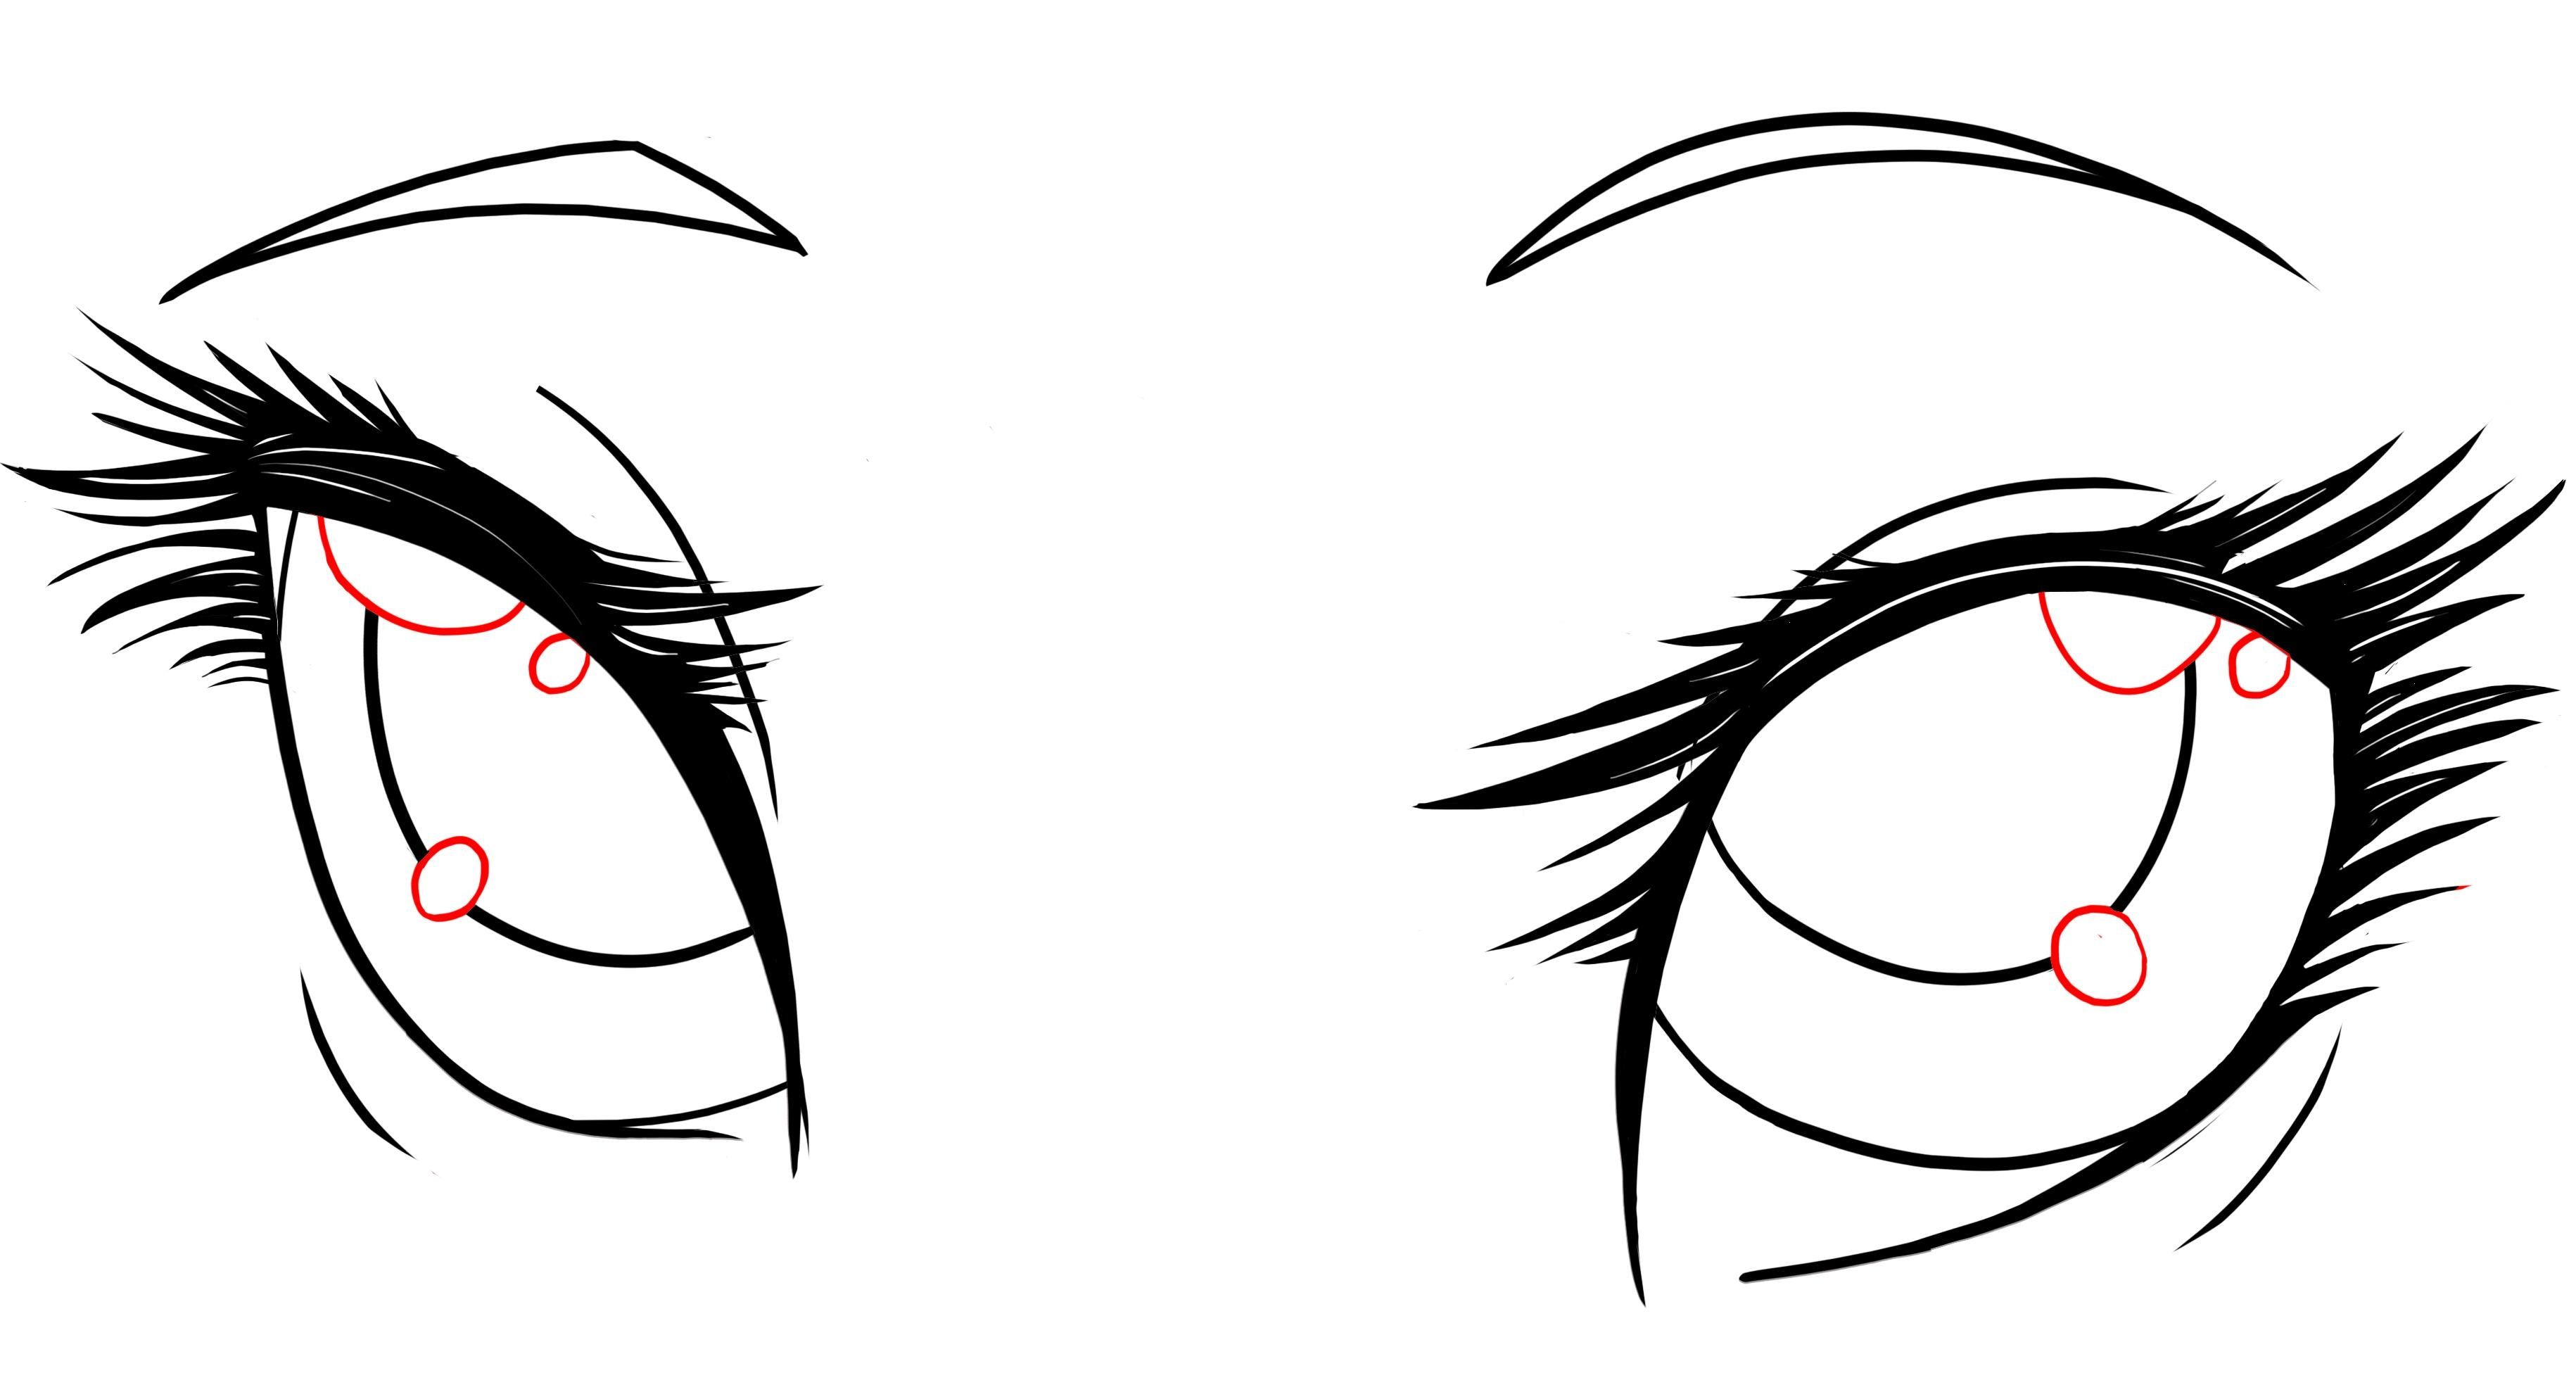 How to Draw Anime Female Eyes Step by Step (Beginners Guide)